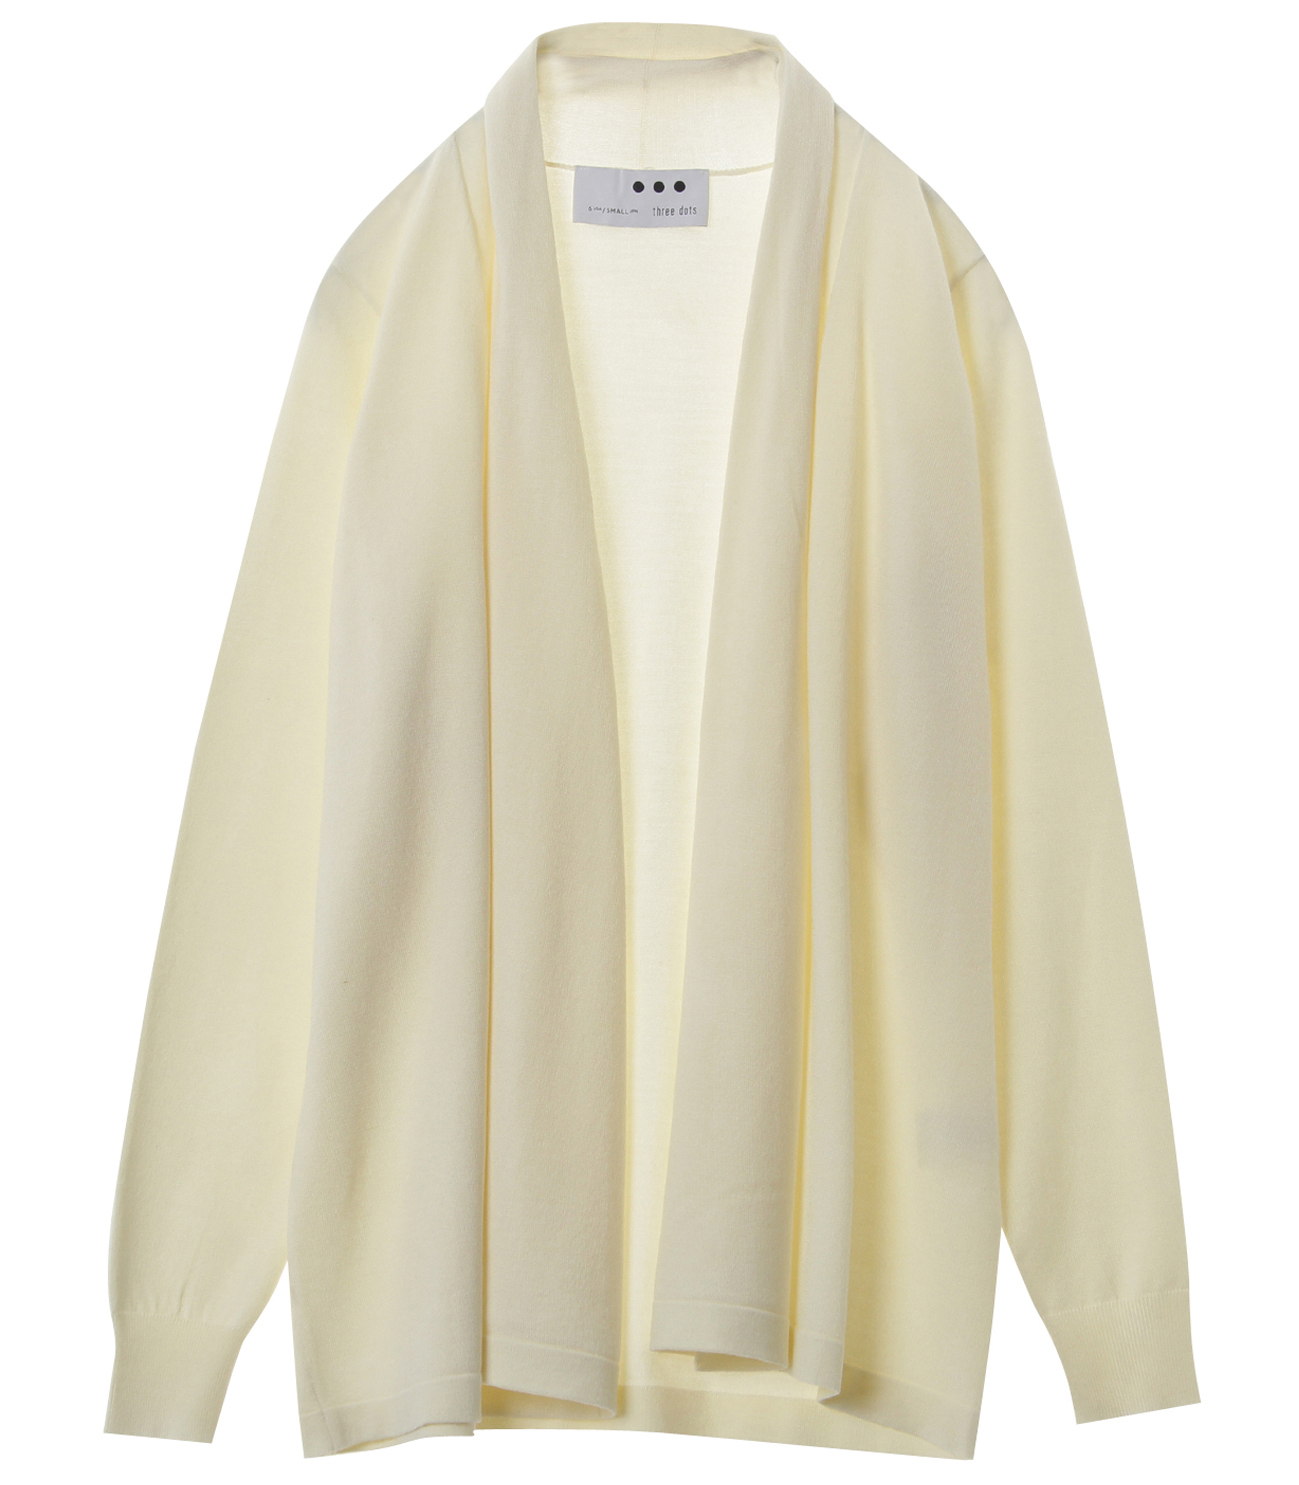 Washable silk l/s cardigan 詳細画像 off white 1